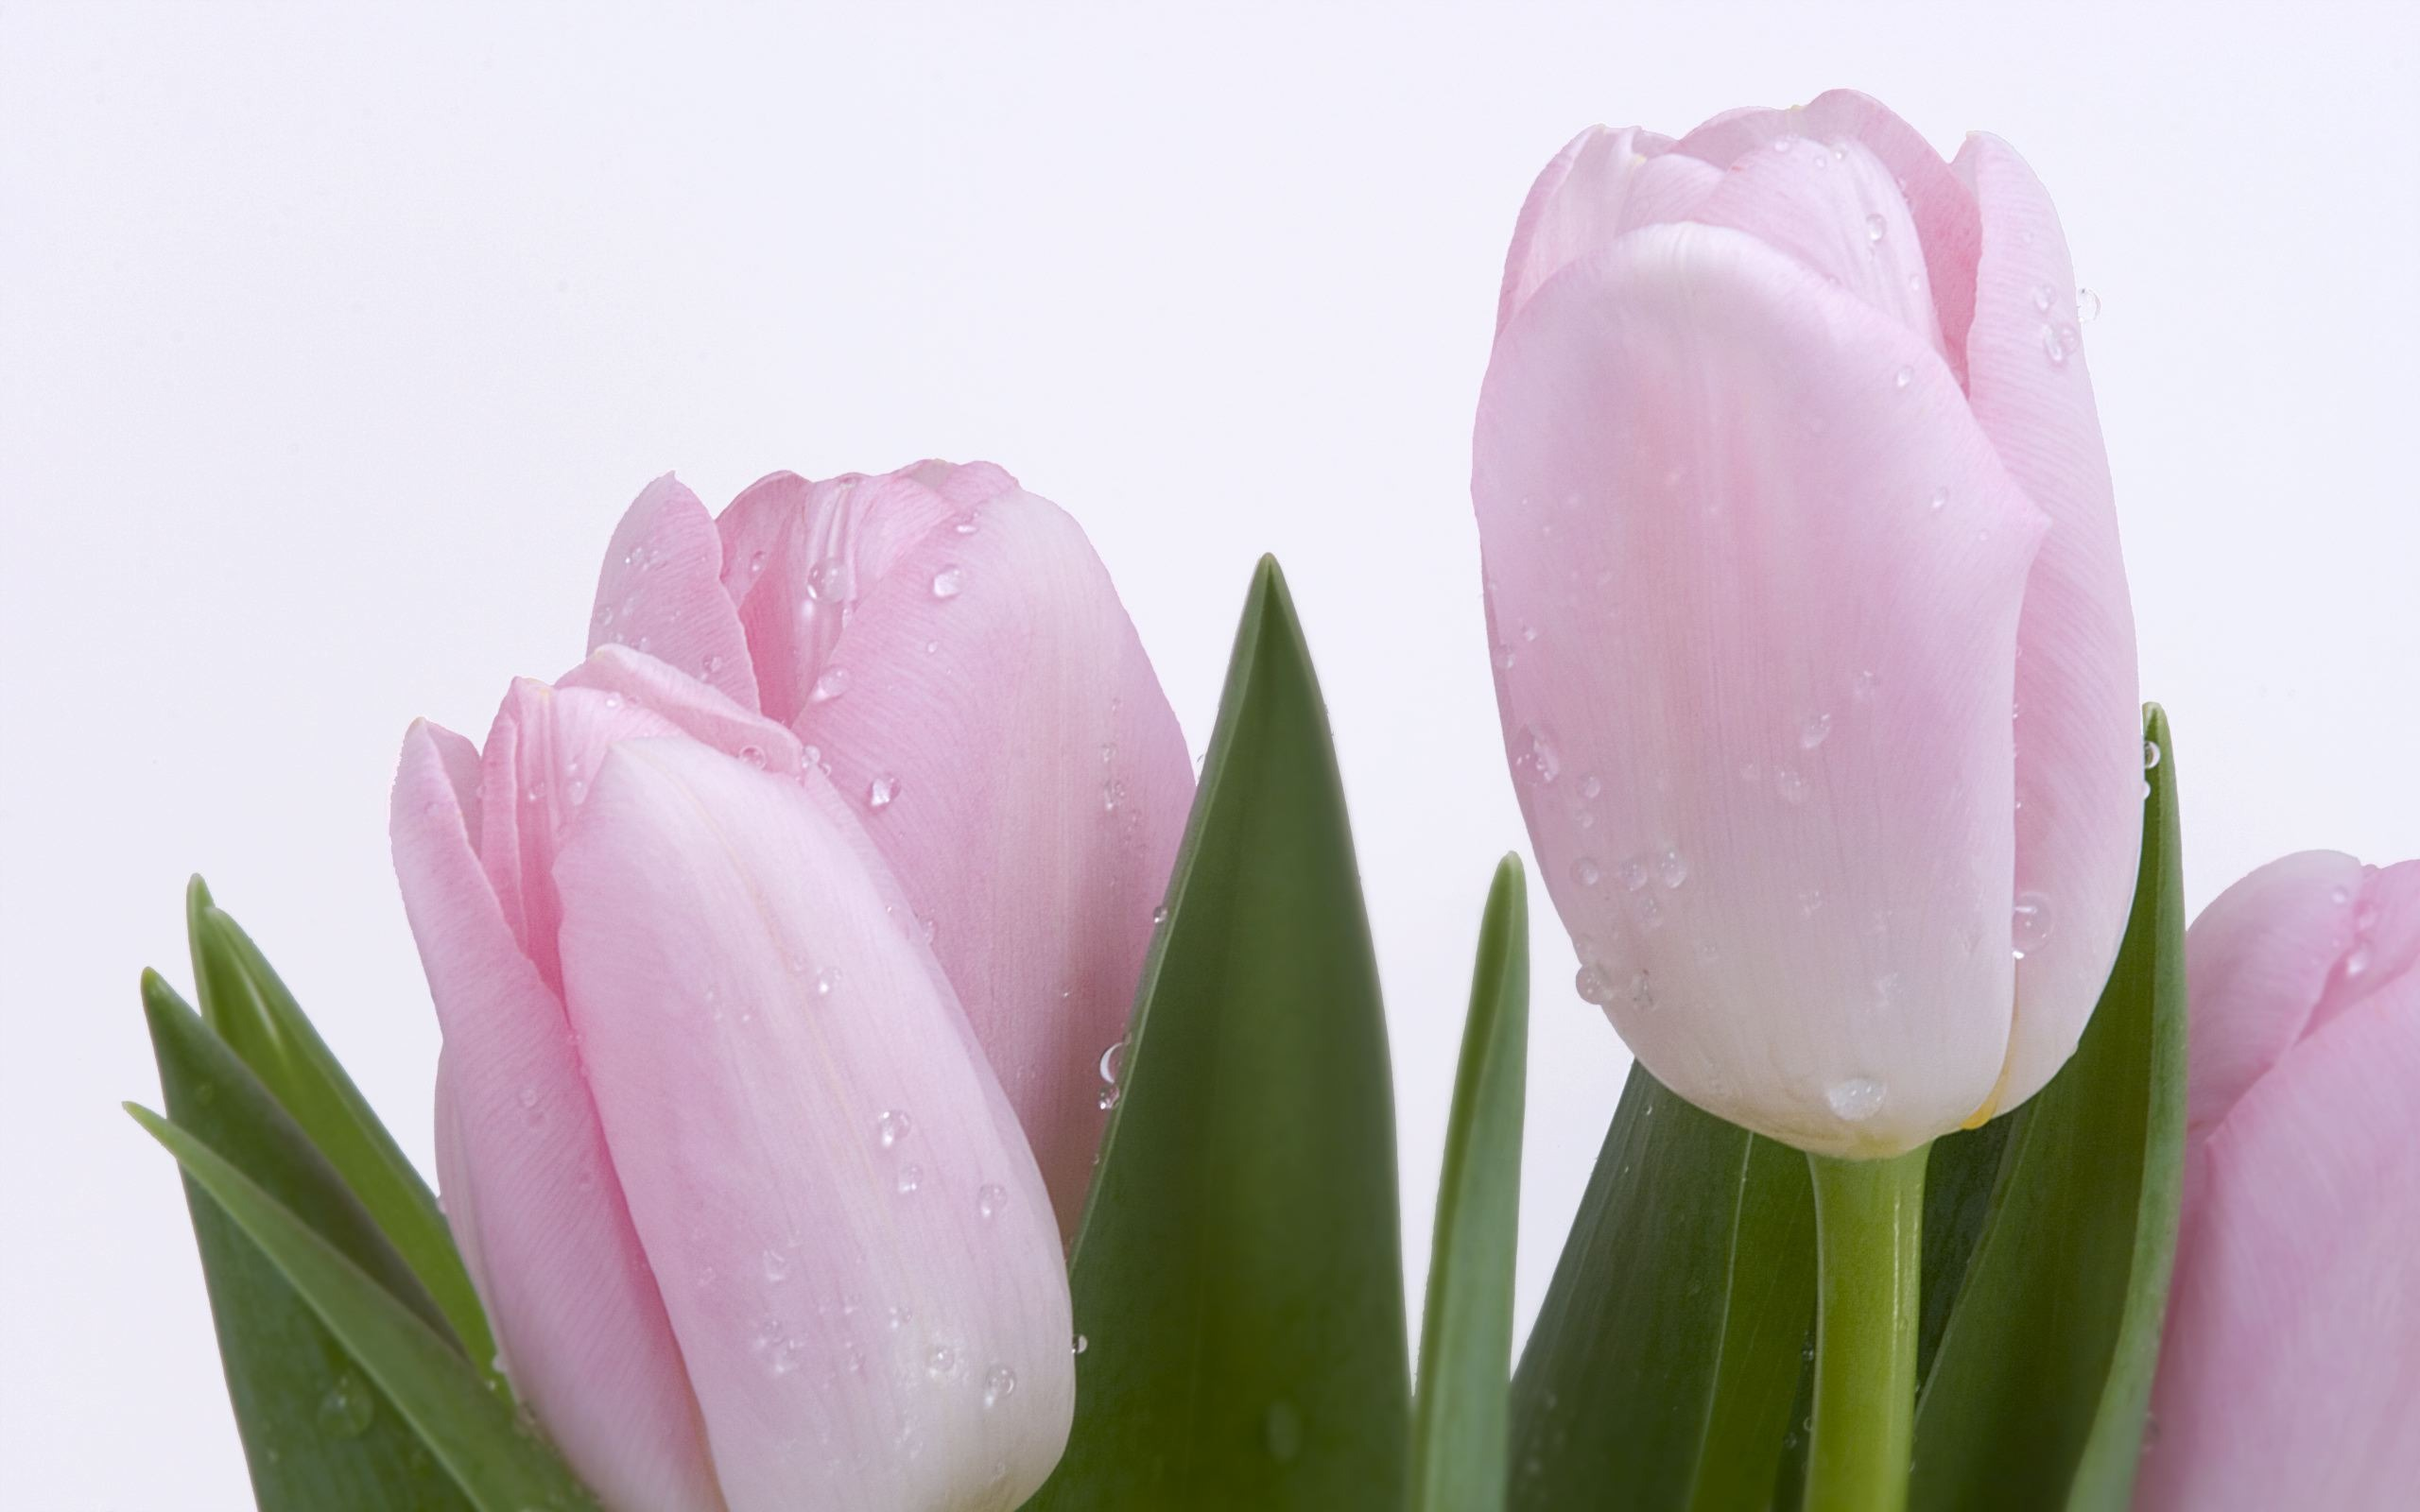 Pink fresh tulips wallpaper flowers nature wallpapers in jpg format pink fresh tulips wallpaper flowers nature wallpapers thecheapjerseys Choice Image